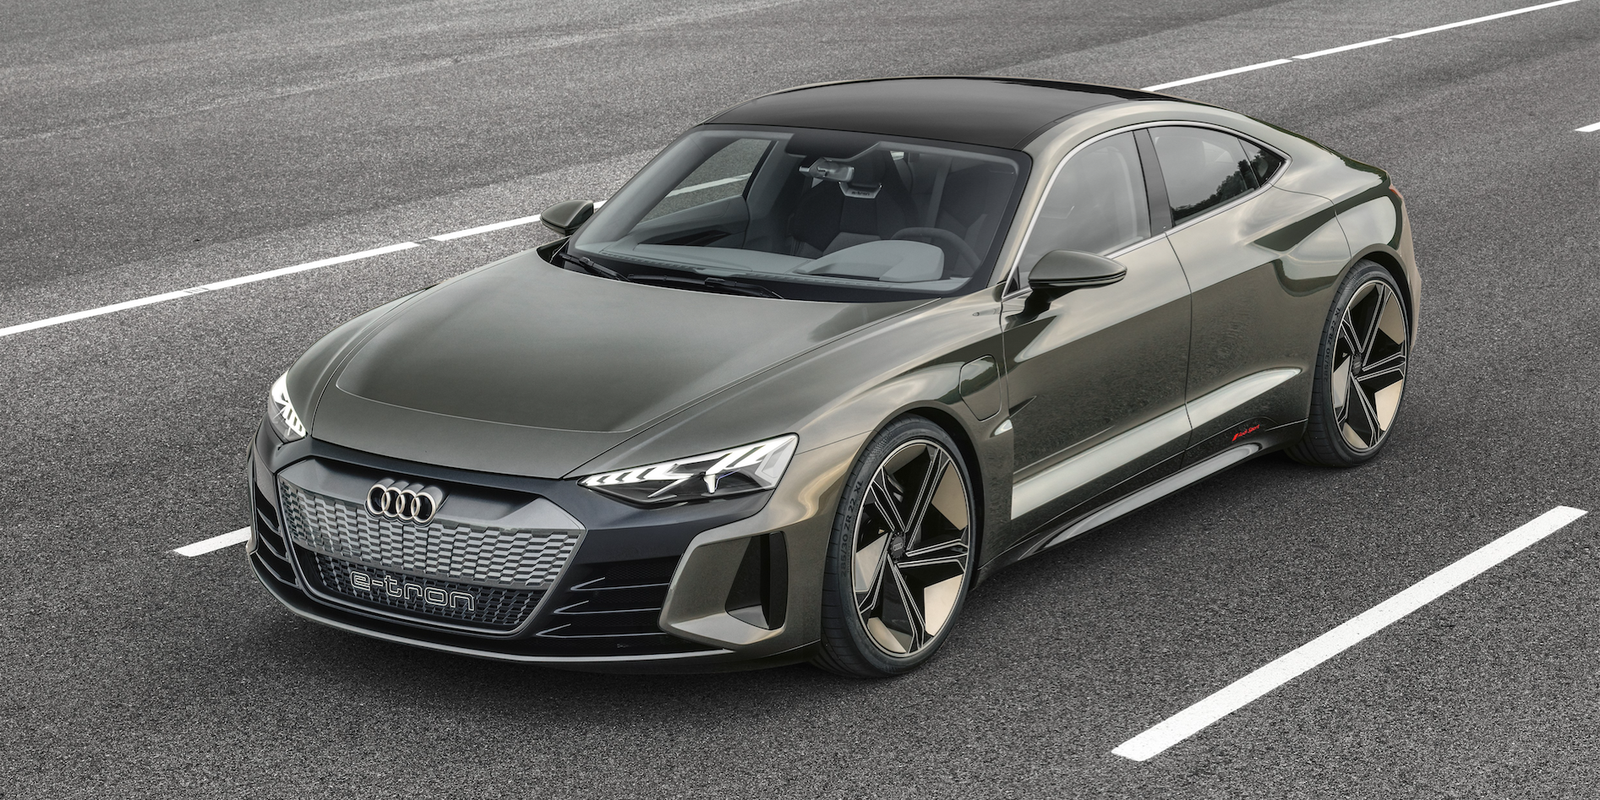 The Audi E Tron Gt Concept Is Widebody 590 Hp Performance Ev Of Future